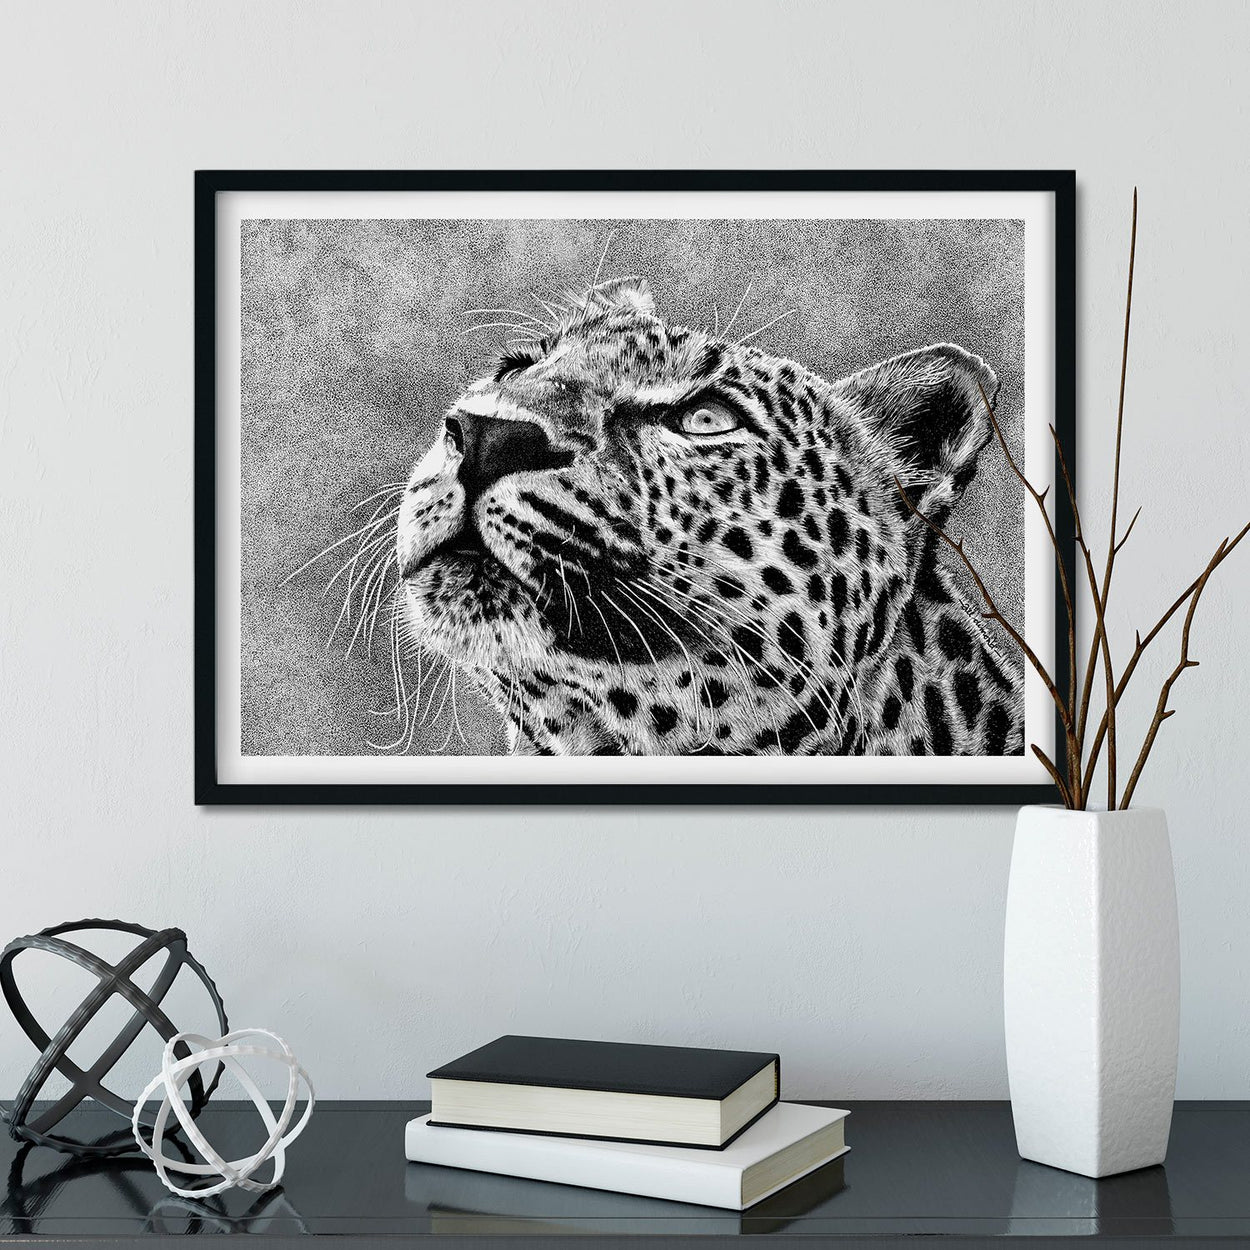 Leopard Wall Art Frame - The Thriving Wild